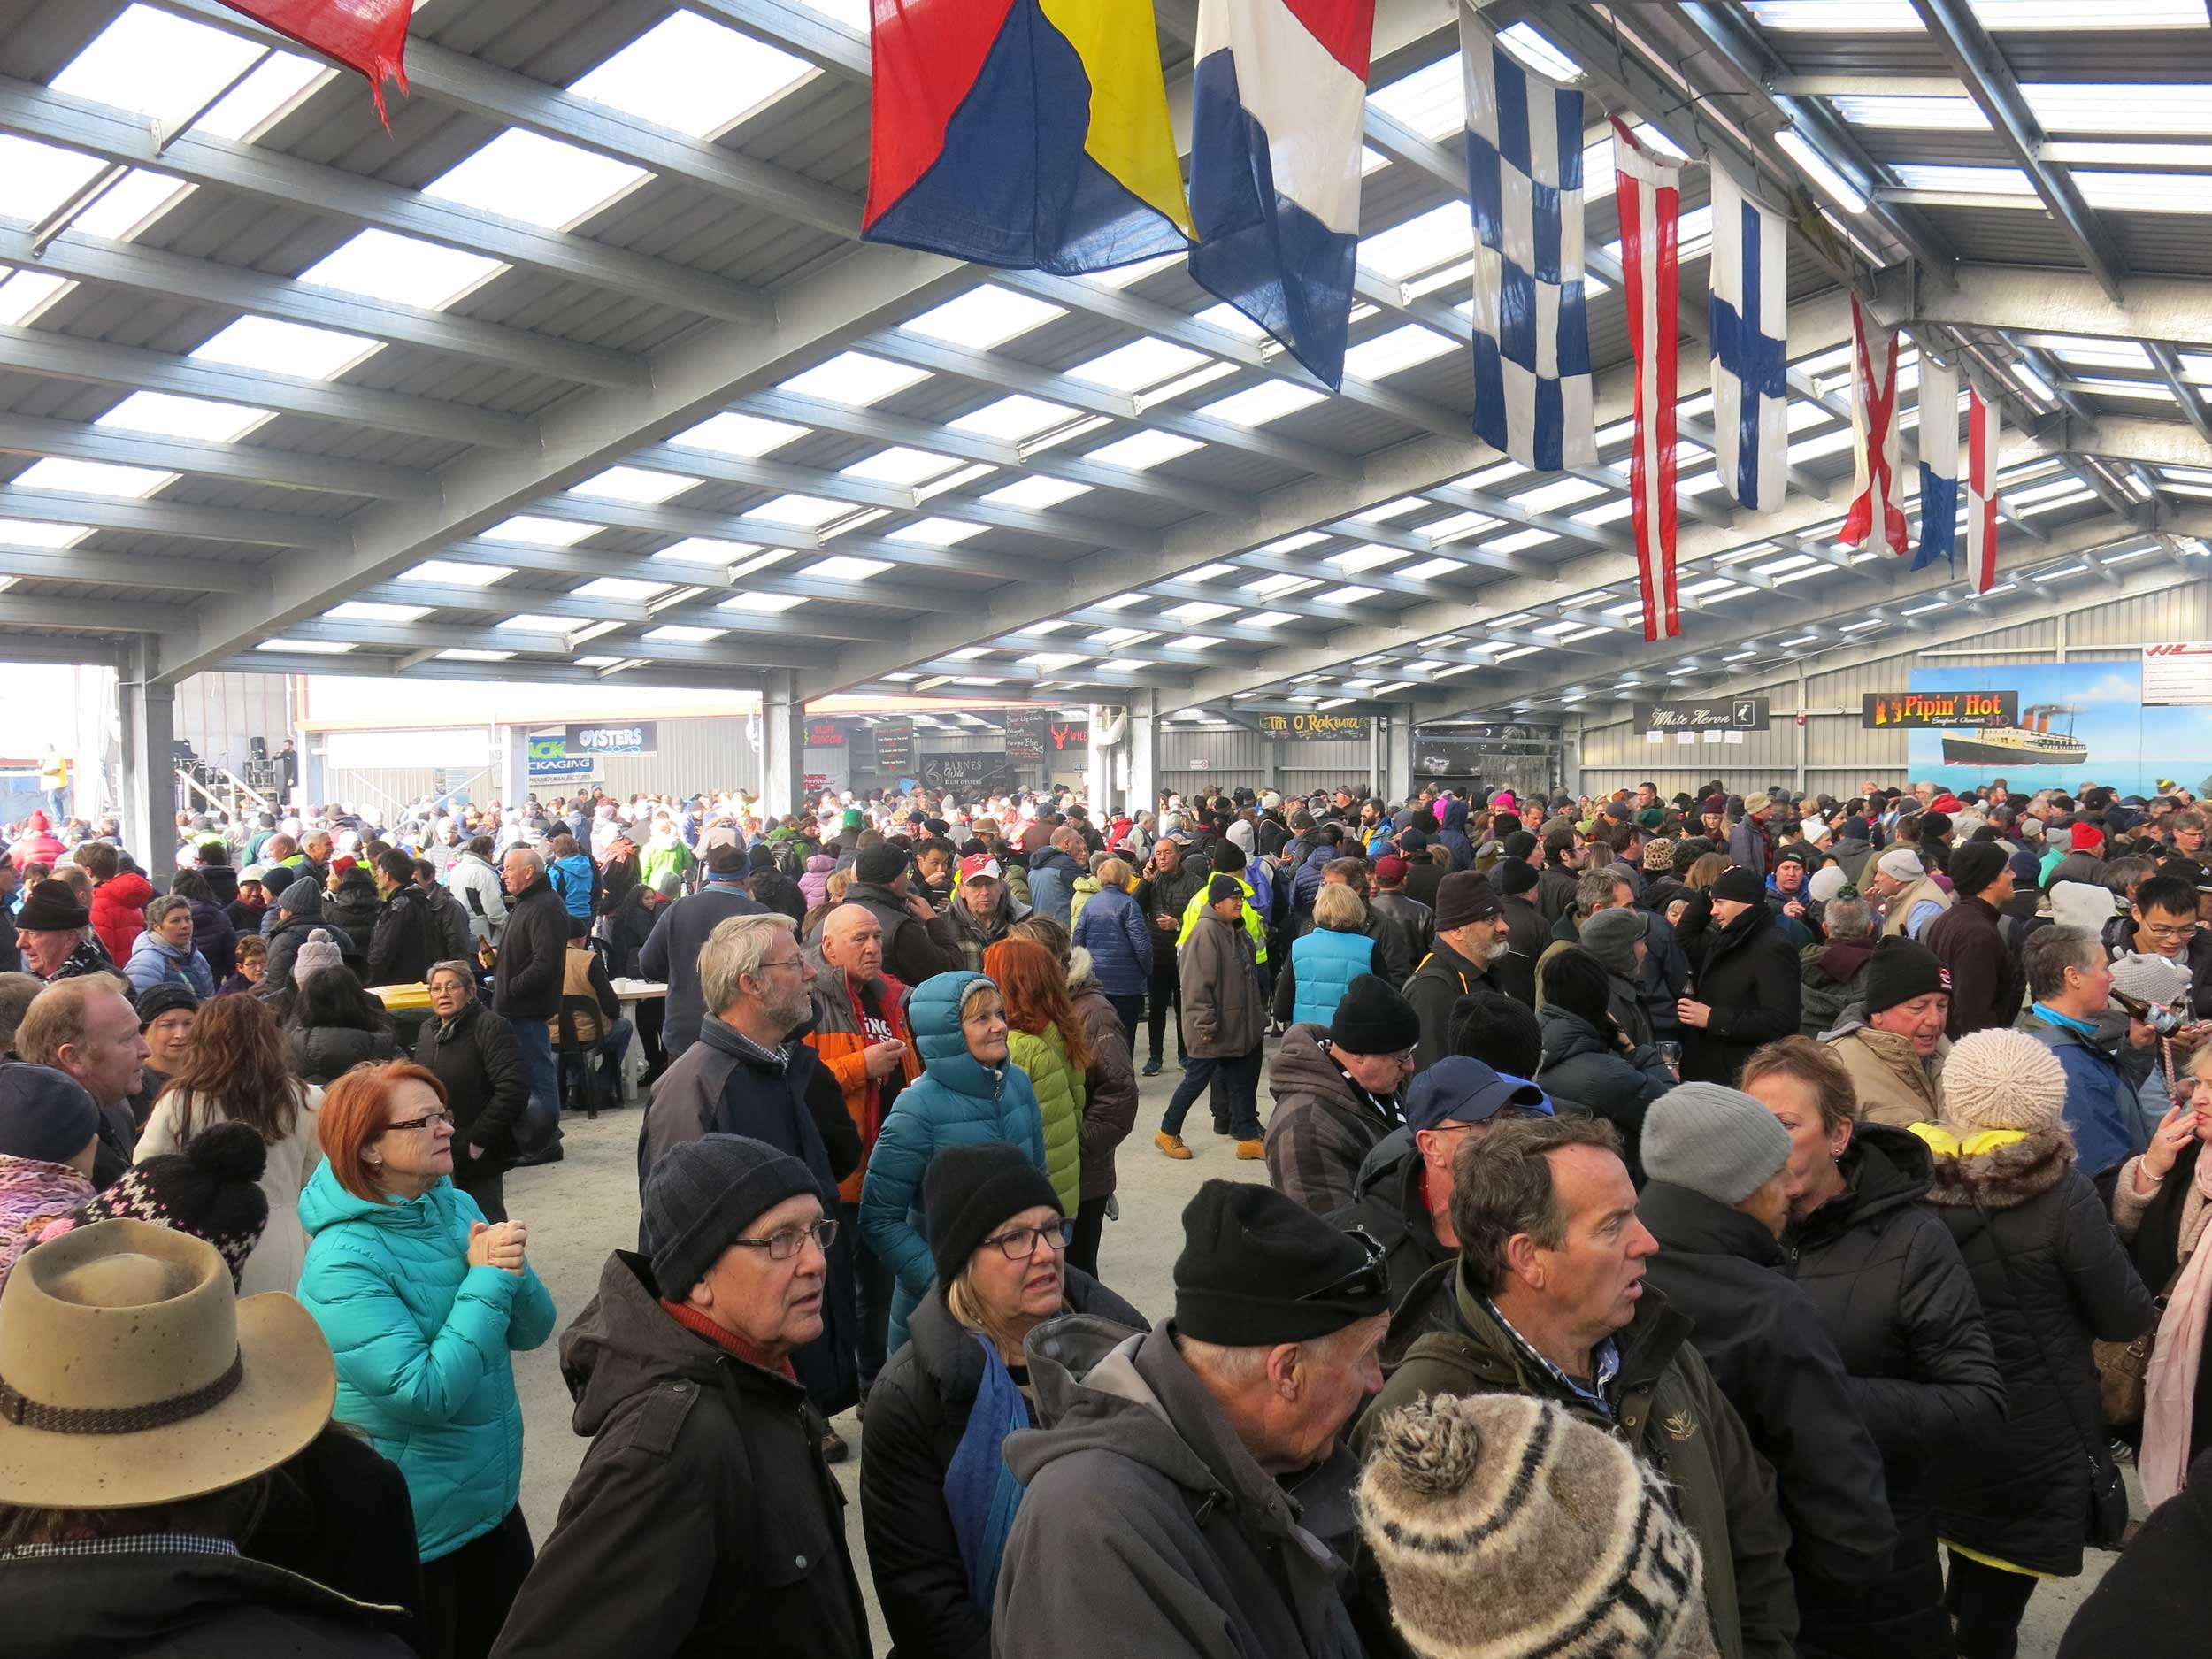 Crowd of people dressed in warm clothing in a metal shed, Bluff, New Zealand